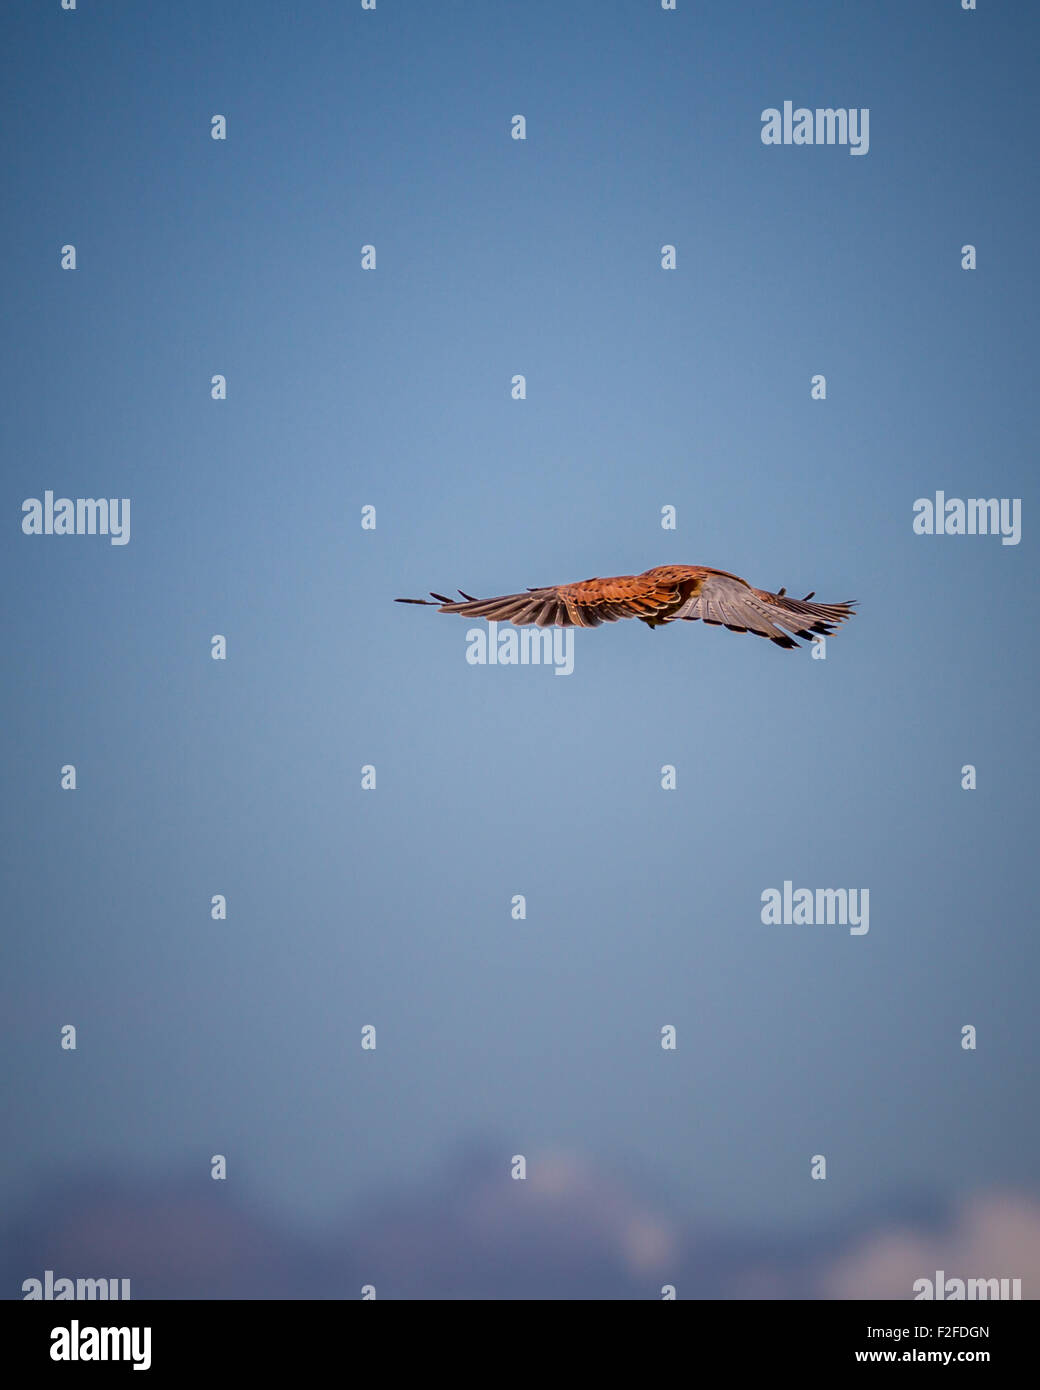 Eye level and above the clouds with a hovering kestrel (Falco tinnunculus) Stock Photo